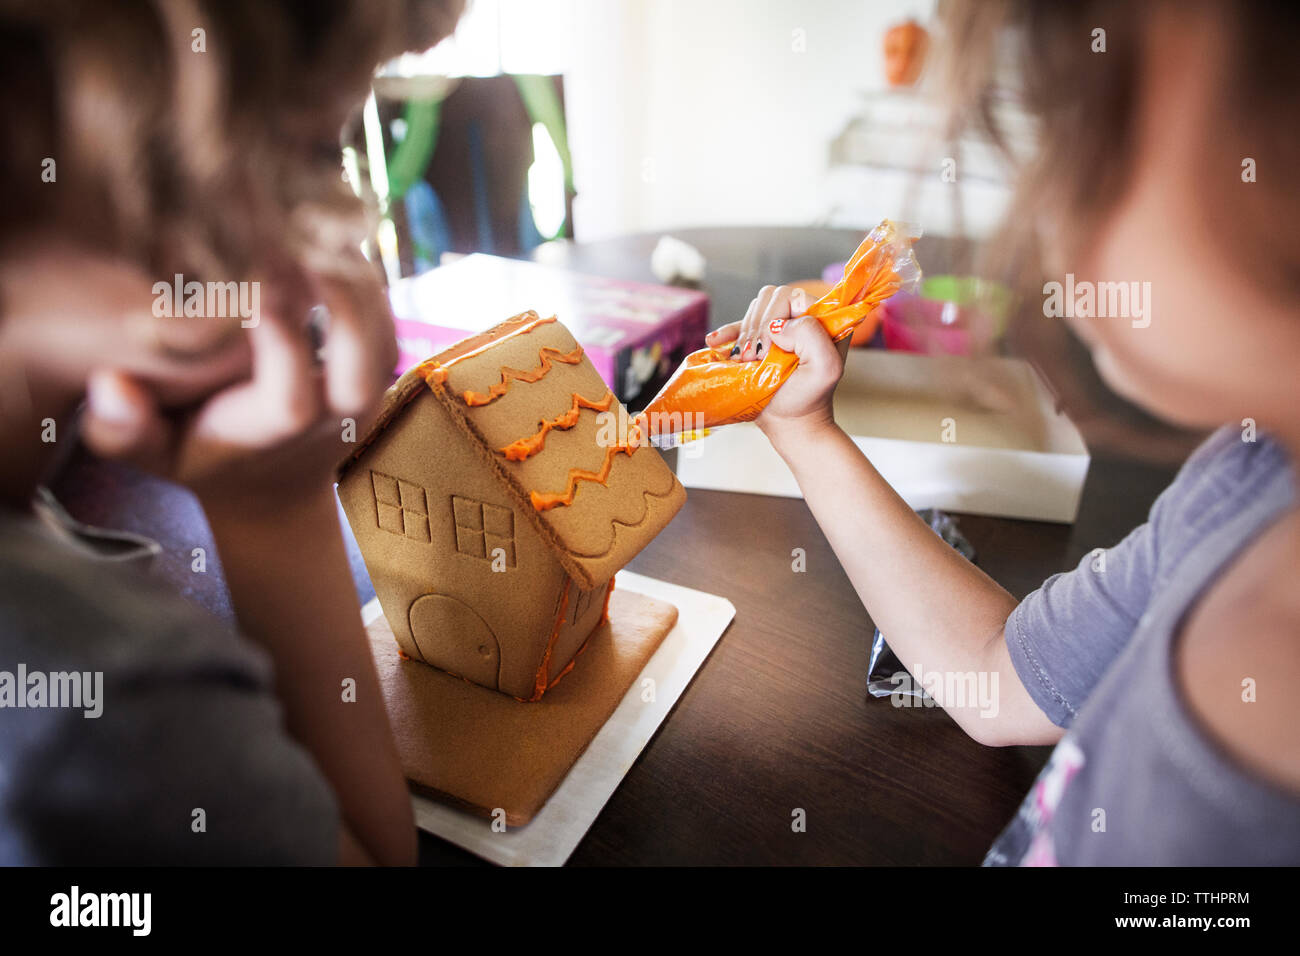 Girls decorating gingerbread house at home - Stock Image